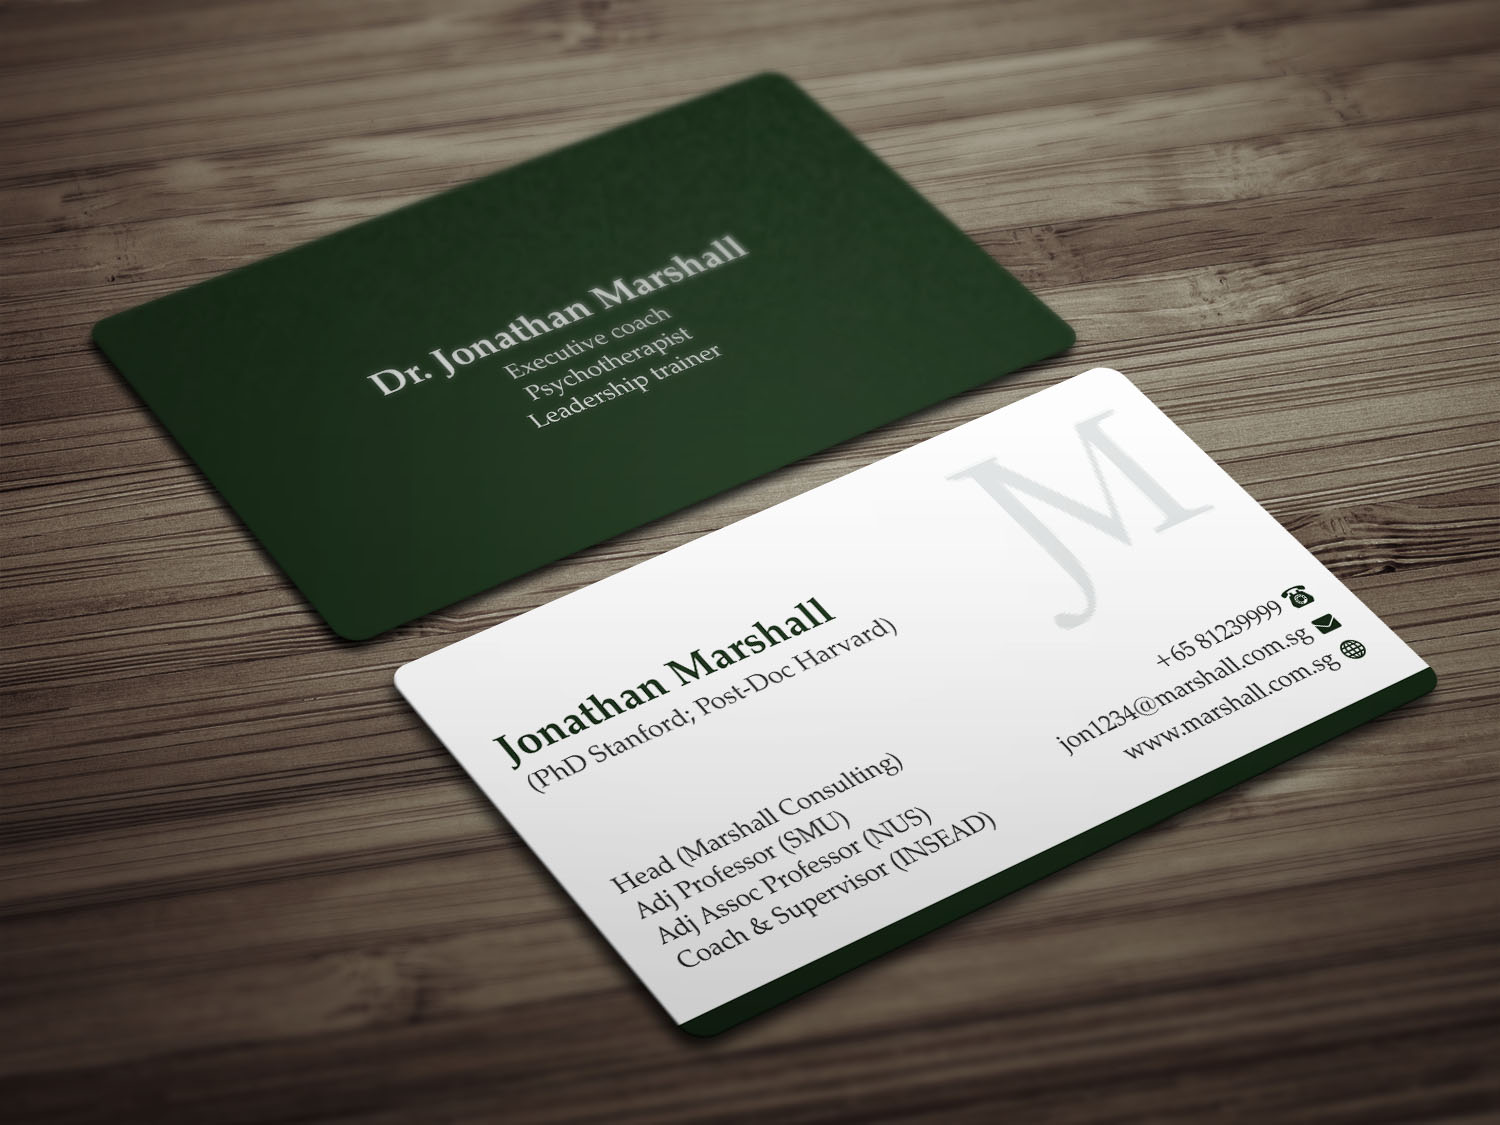 172 upmarket business card designs psychology business card design business card design by mdreyad for marshall consulting pte ltd design reheart Gallery